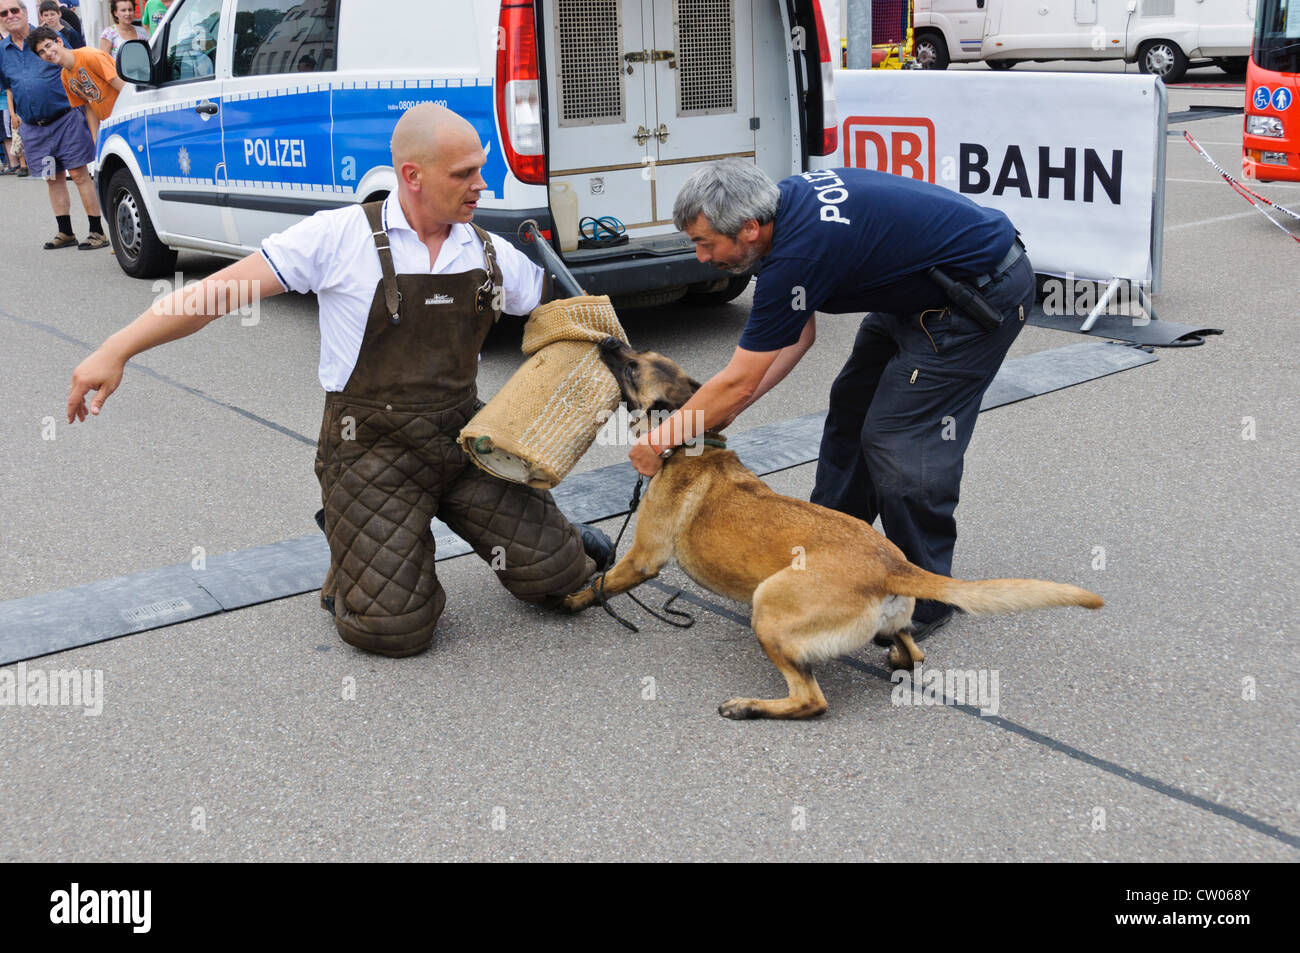 K-9 Belgian Shepherd Dog Malinois German Police Dog performing a protection dog exercise in public biting in the - Stock Image